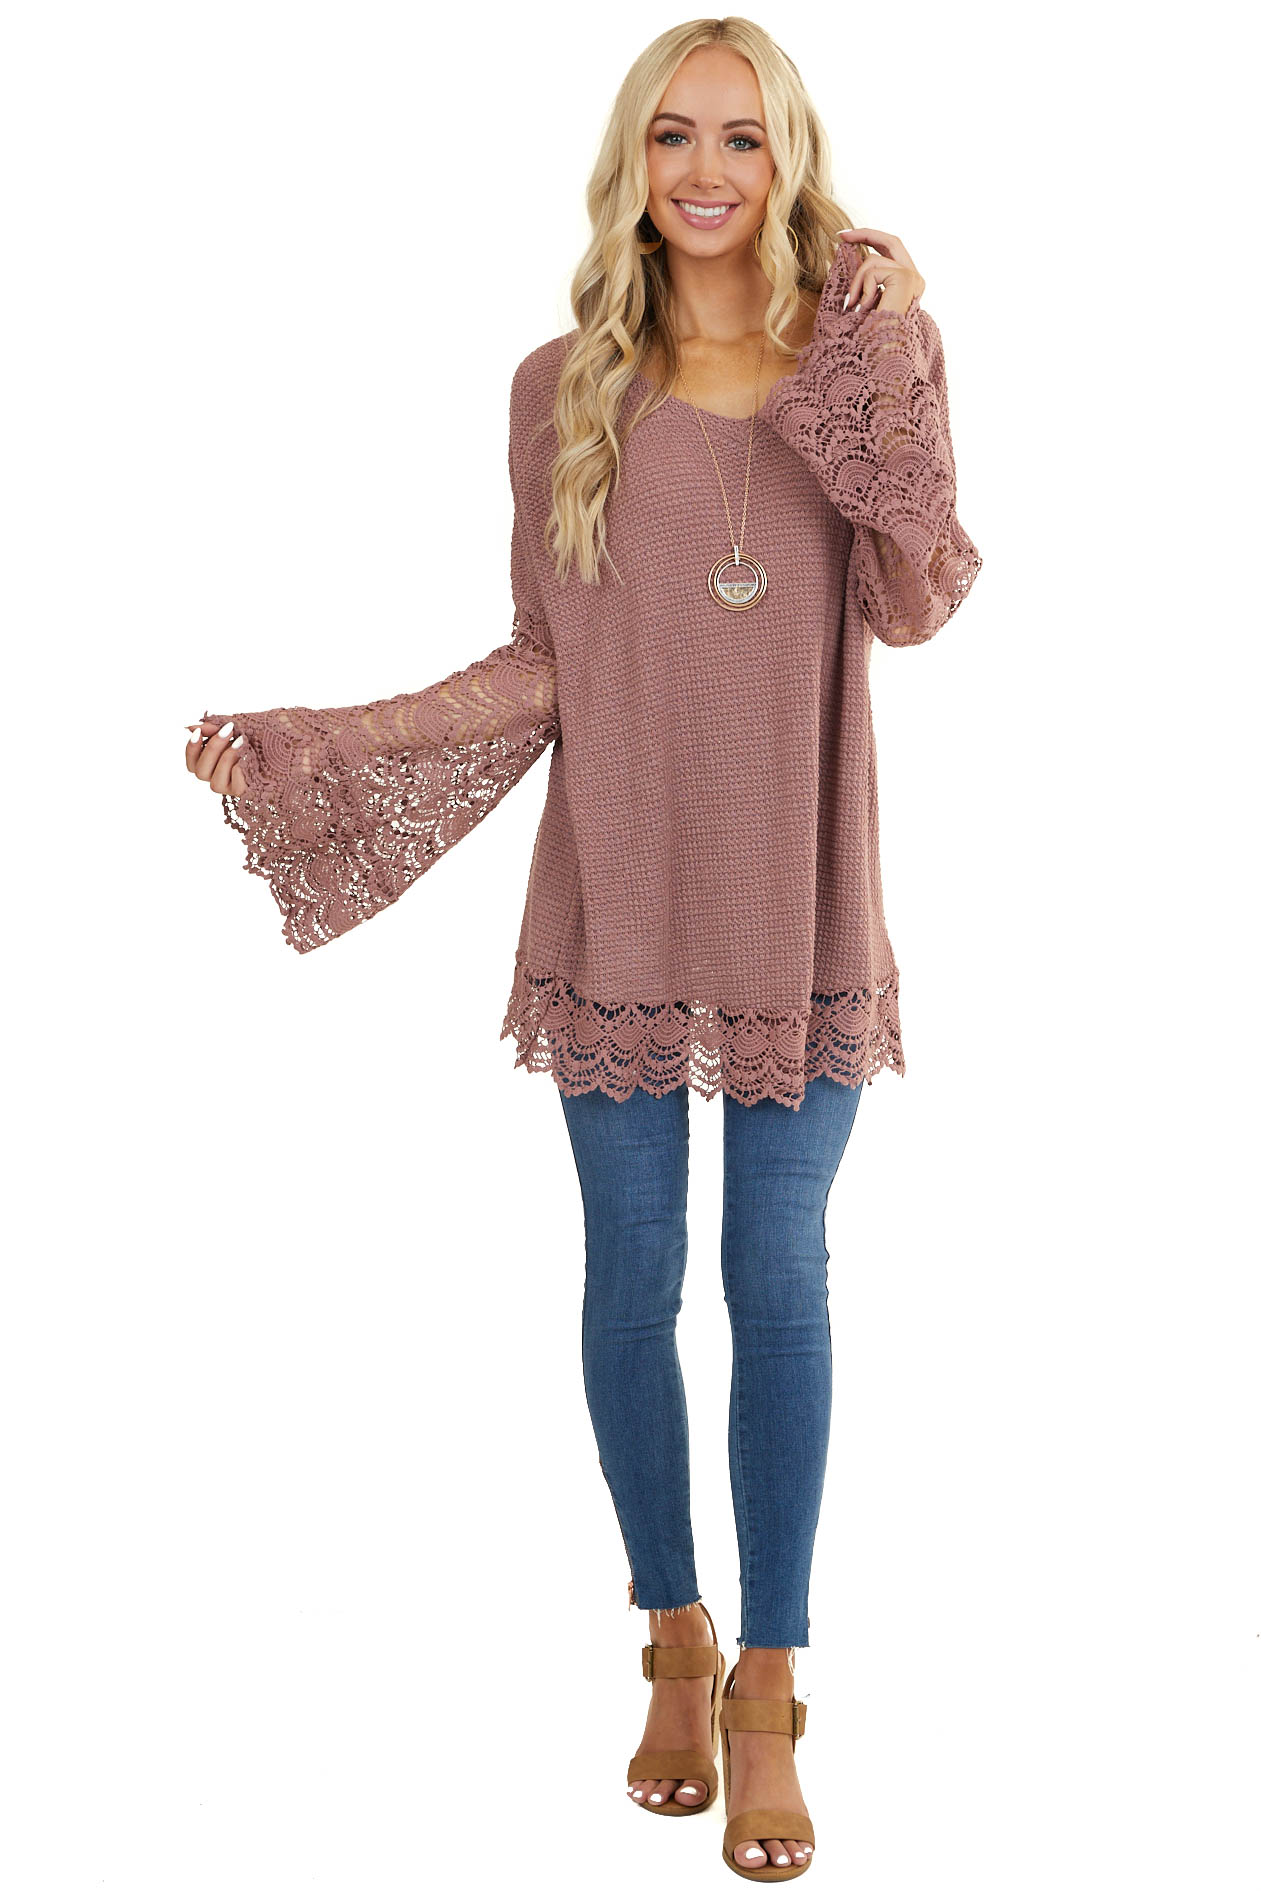 Mauve Textured Knit Top with Lace Bell Sleeves and Trim